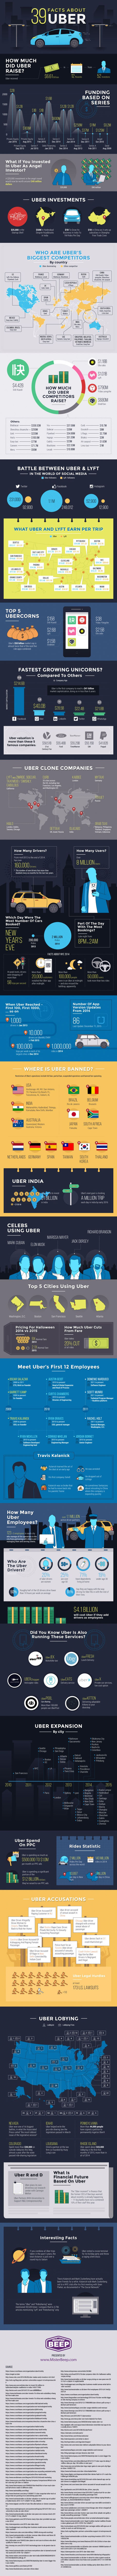 facts_about_uber